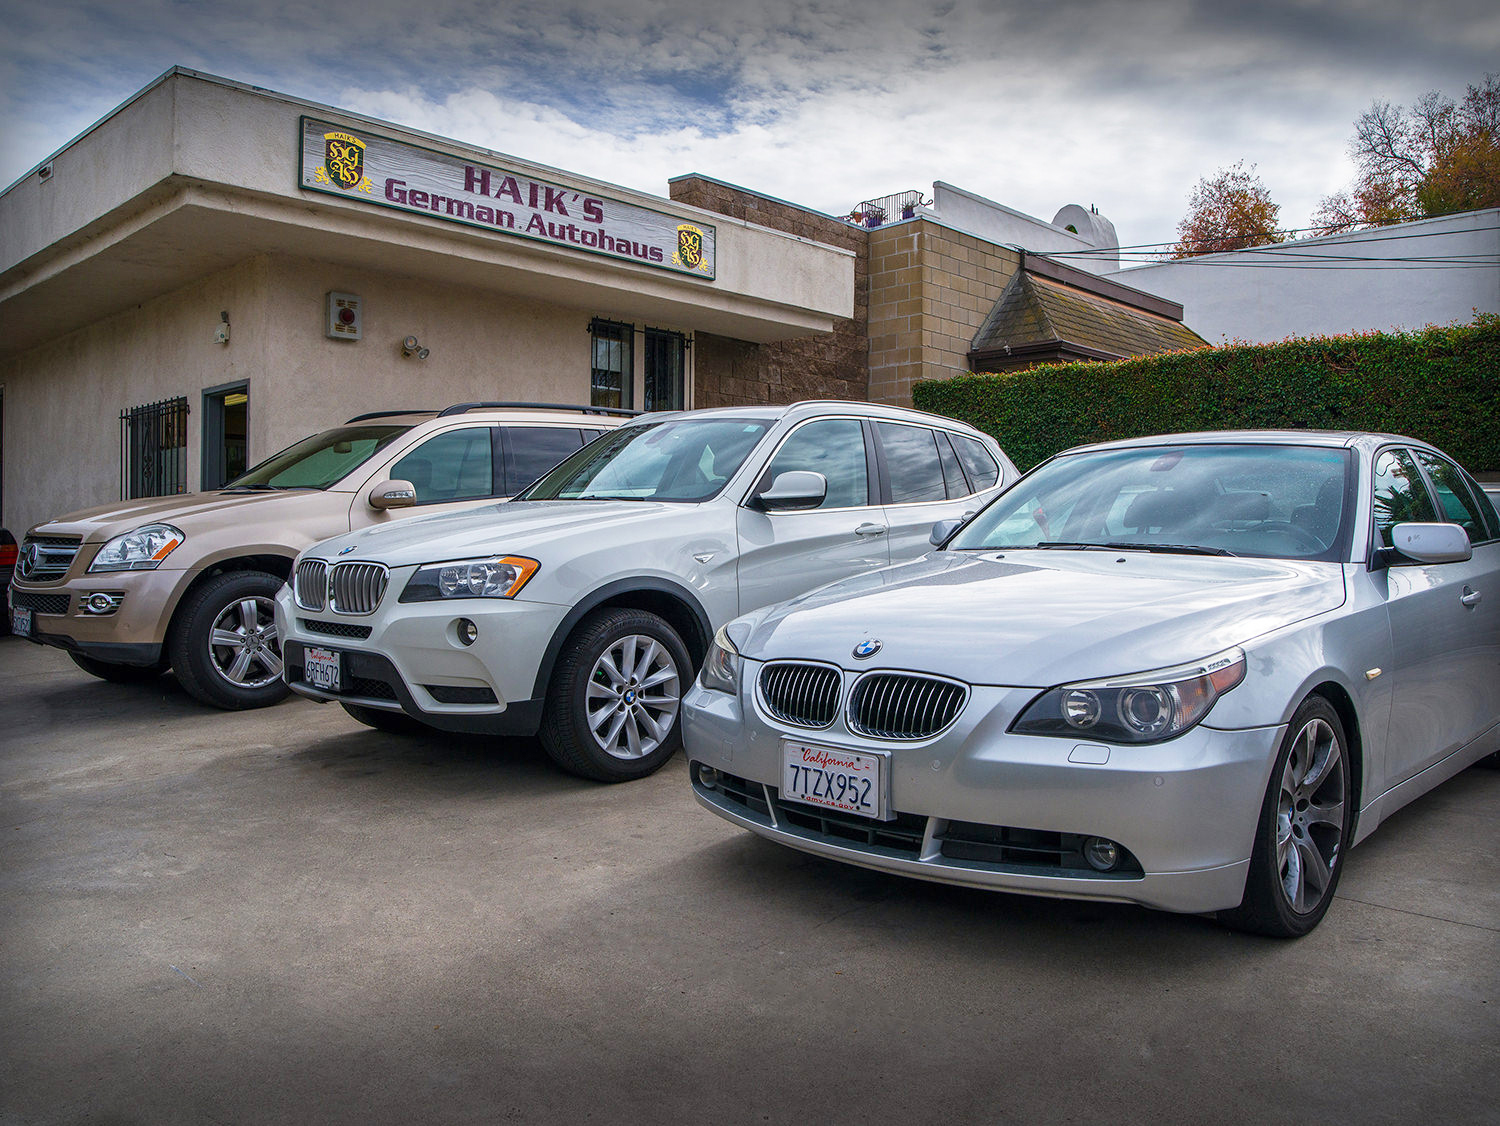 BMW Repair Service Santa Barbara Haiks German Autohaus - All bmw